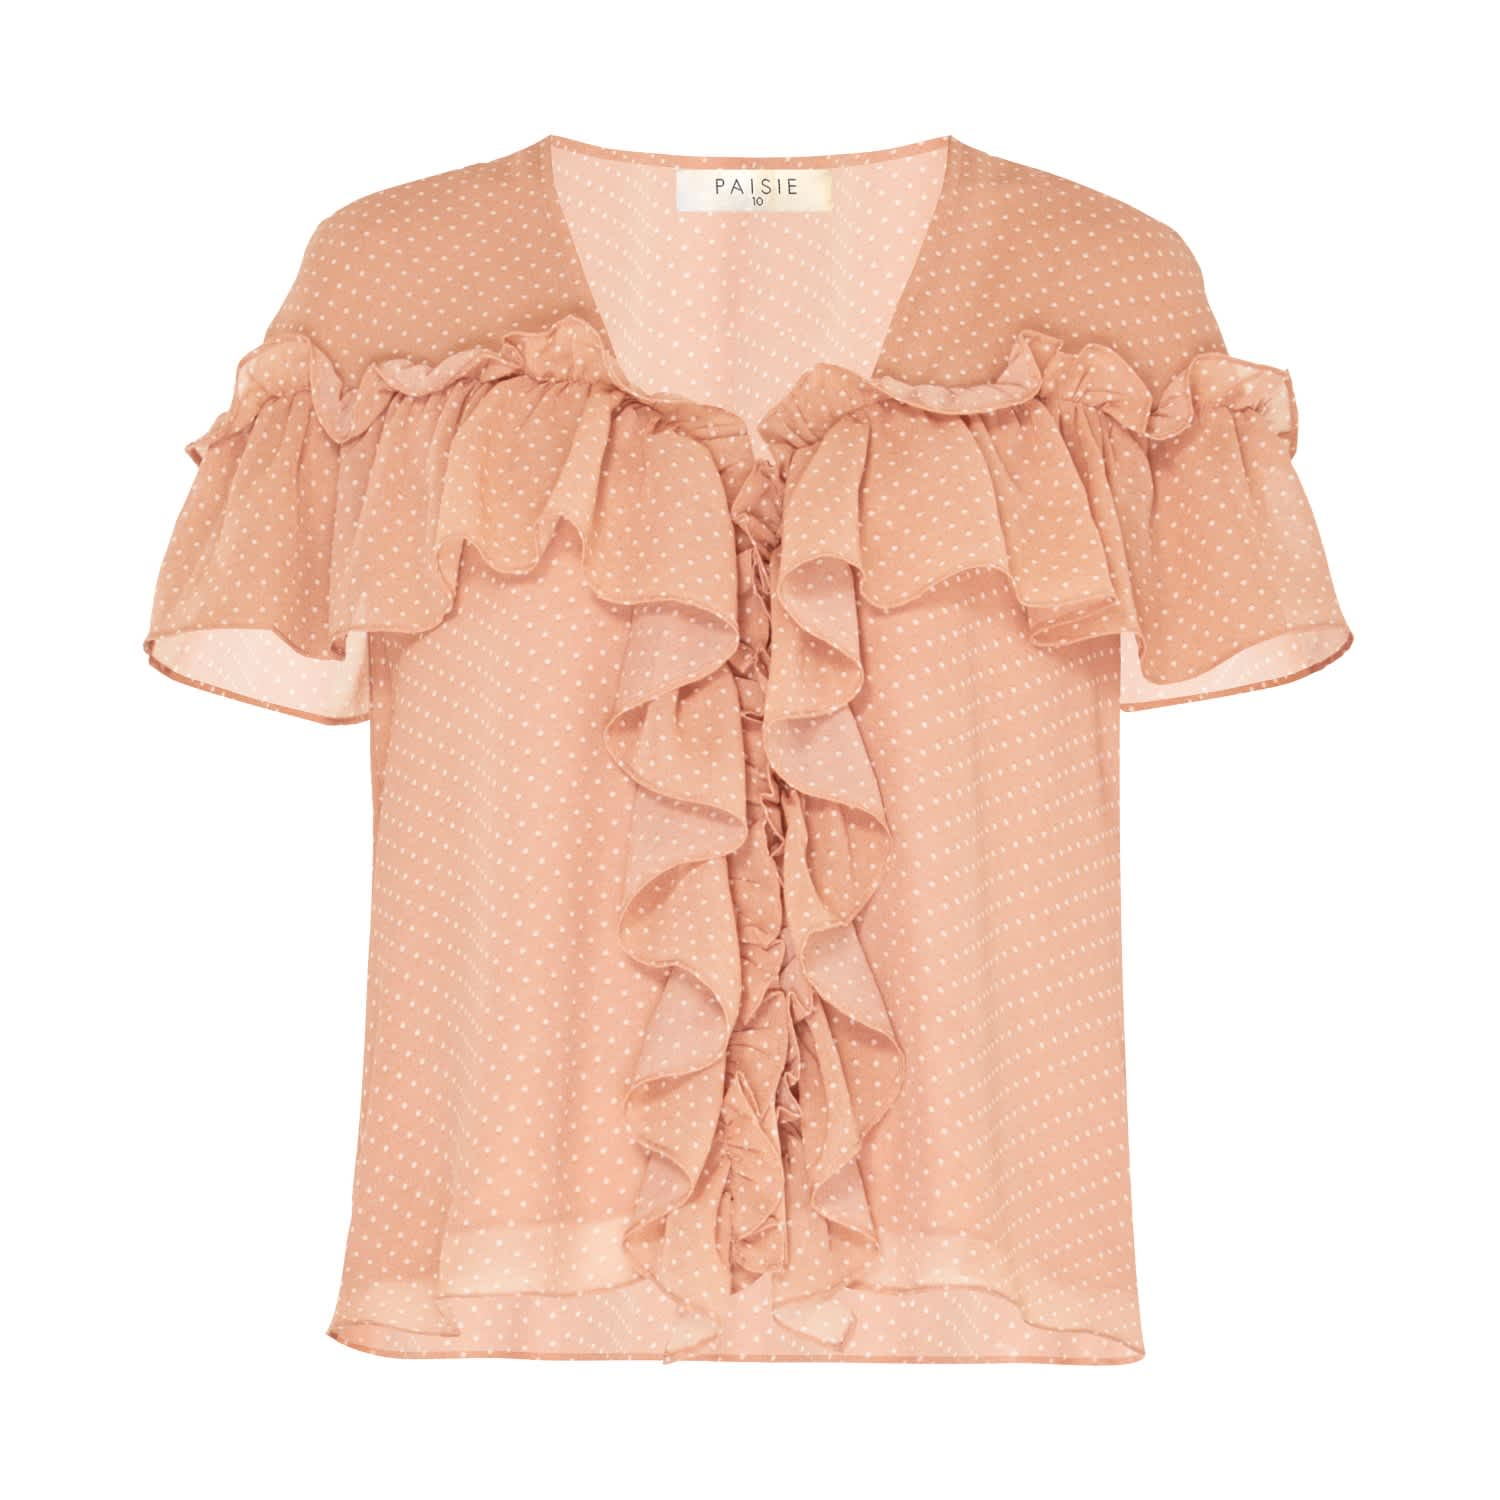 be8ee53baaa V-Neck Polka Dot Blouse With Ruffles In Coral & White | PAISIE ...